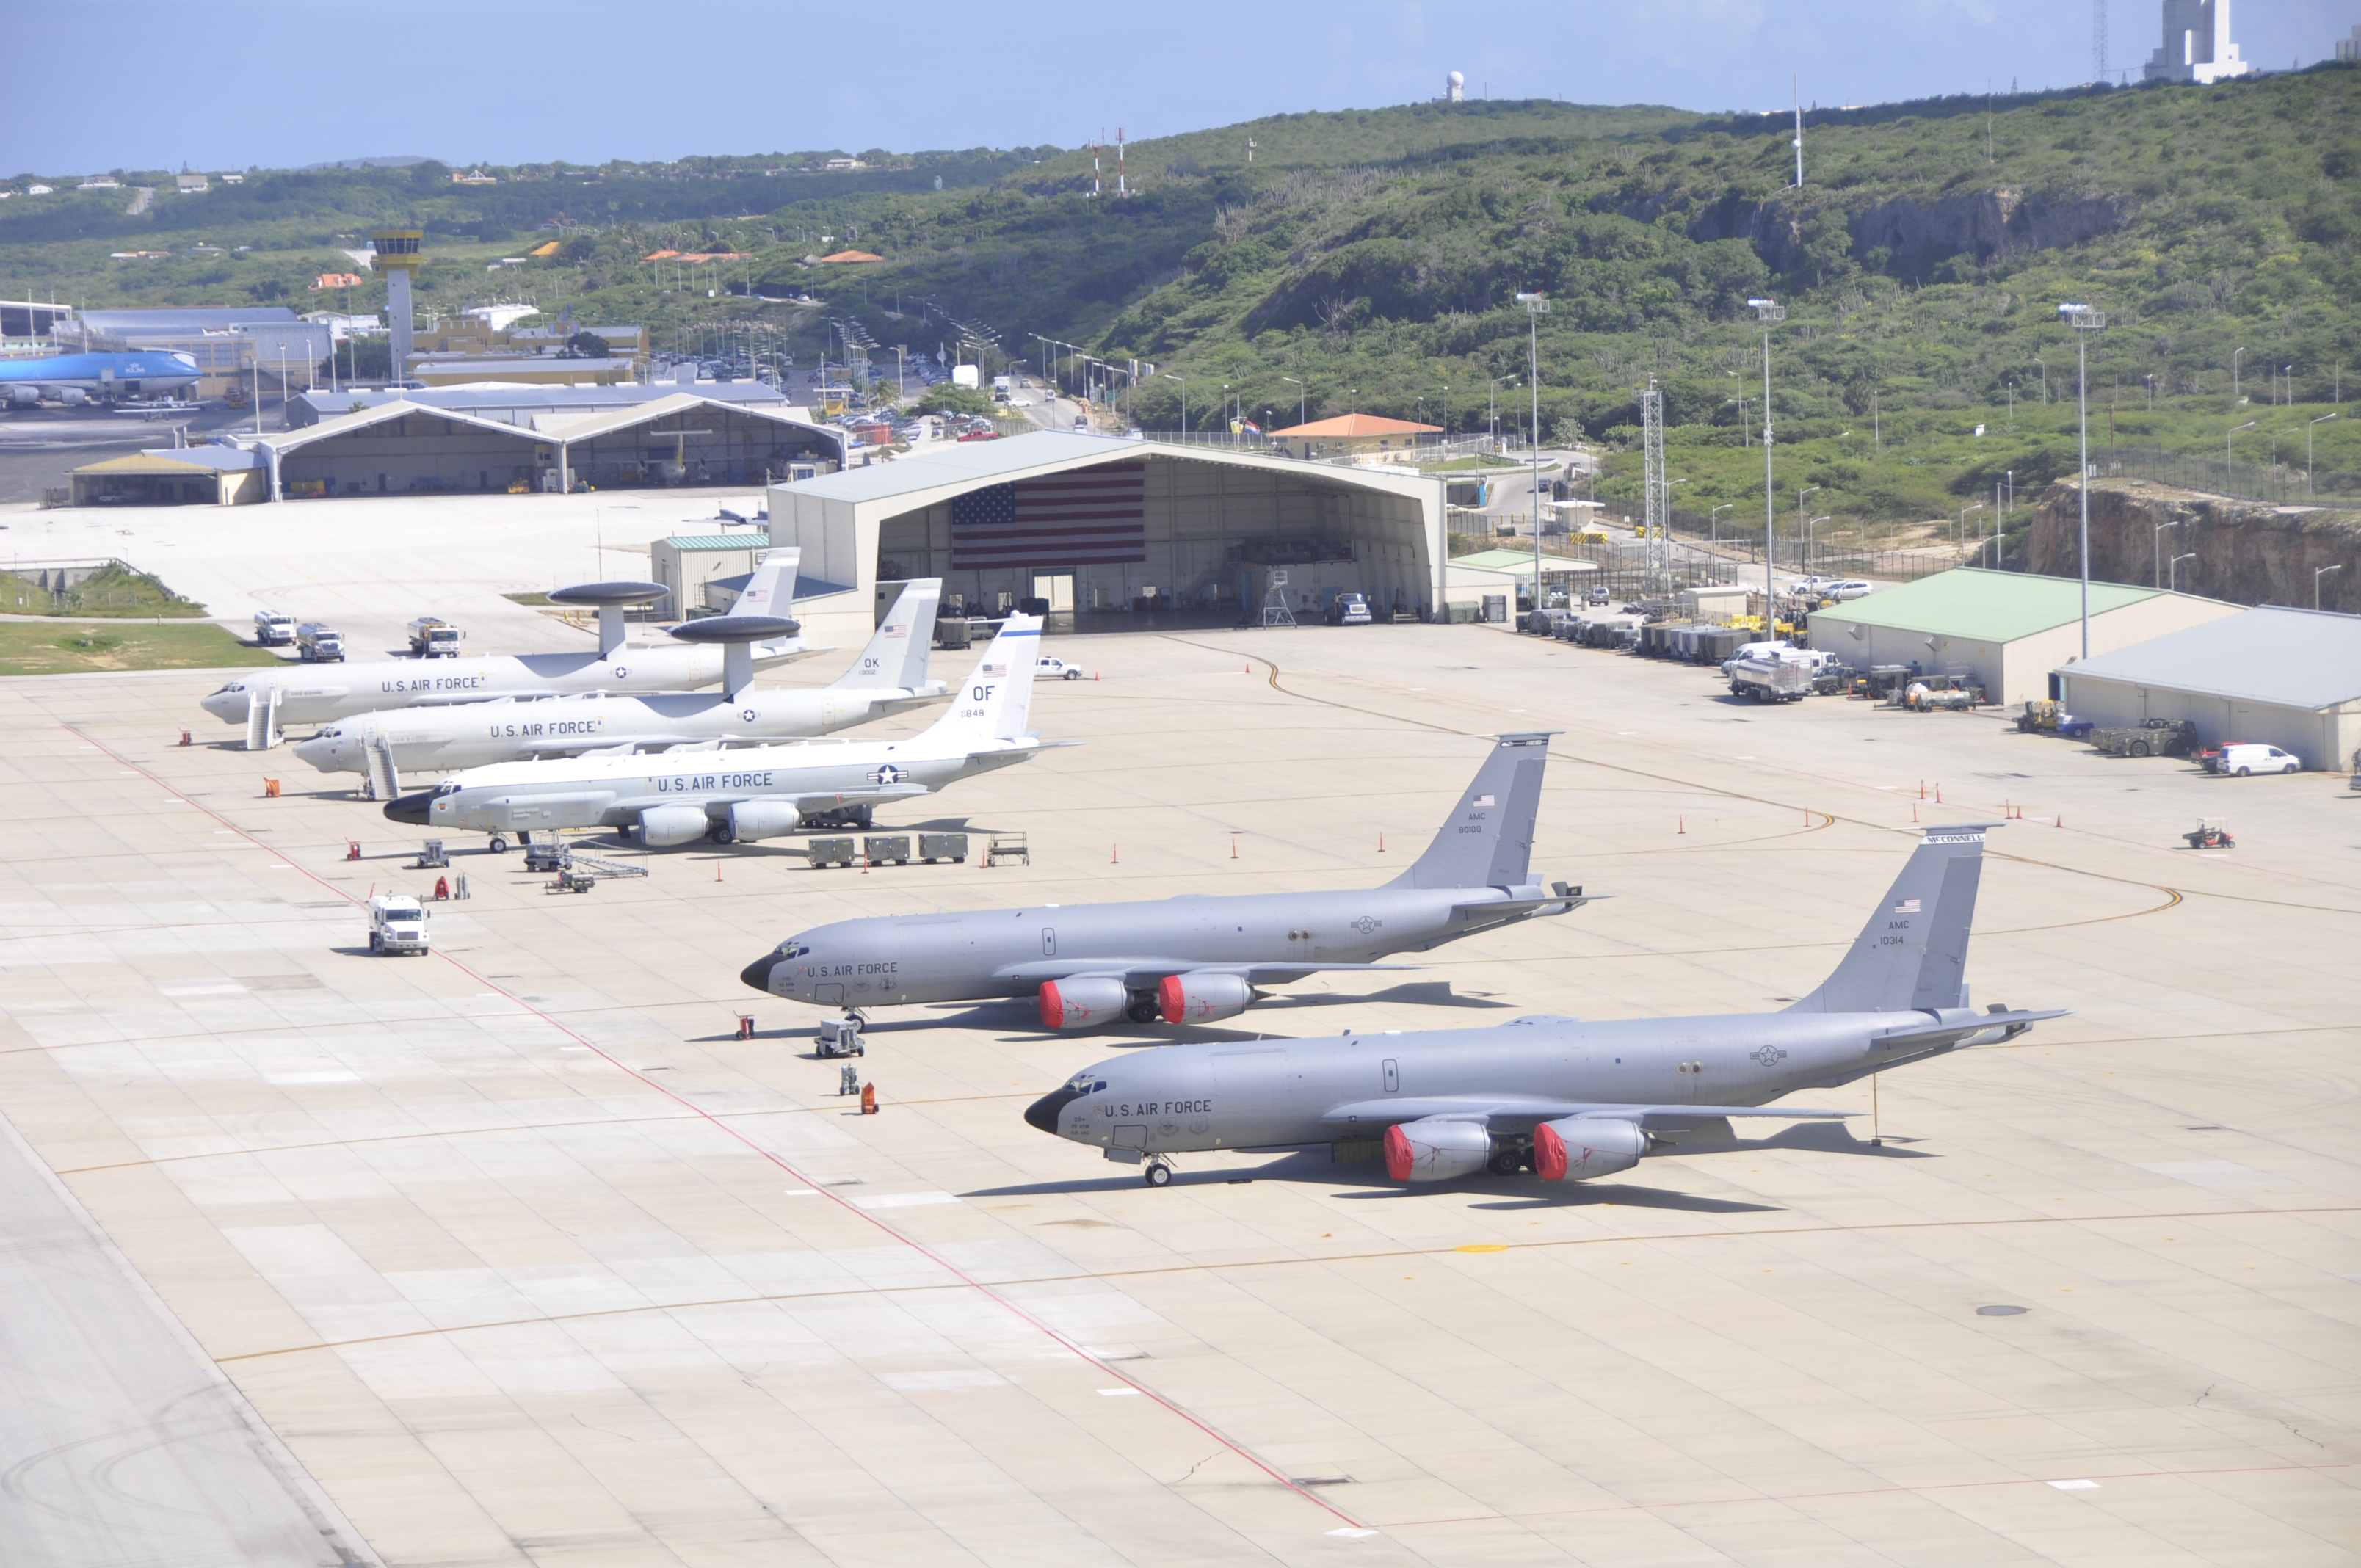 File photo of the Curacao/Aruba Cooperative Security Location. (U.S. Air Force photo)